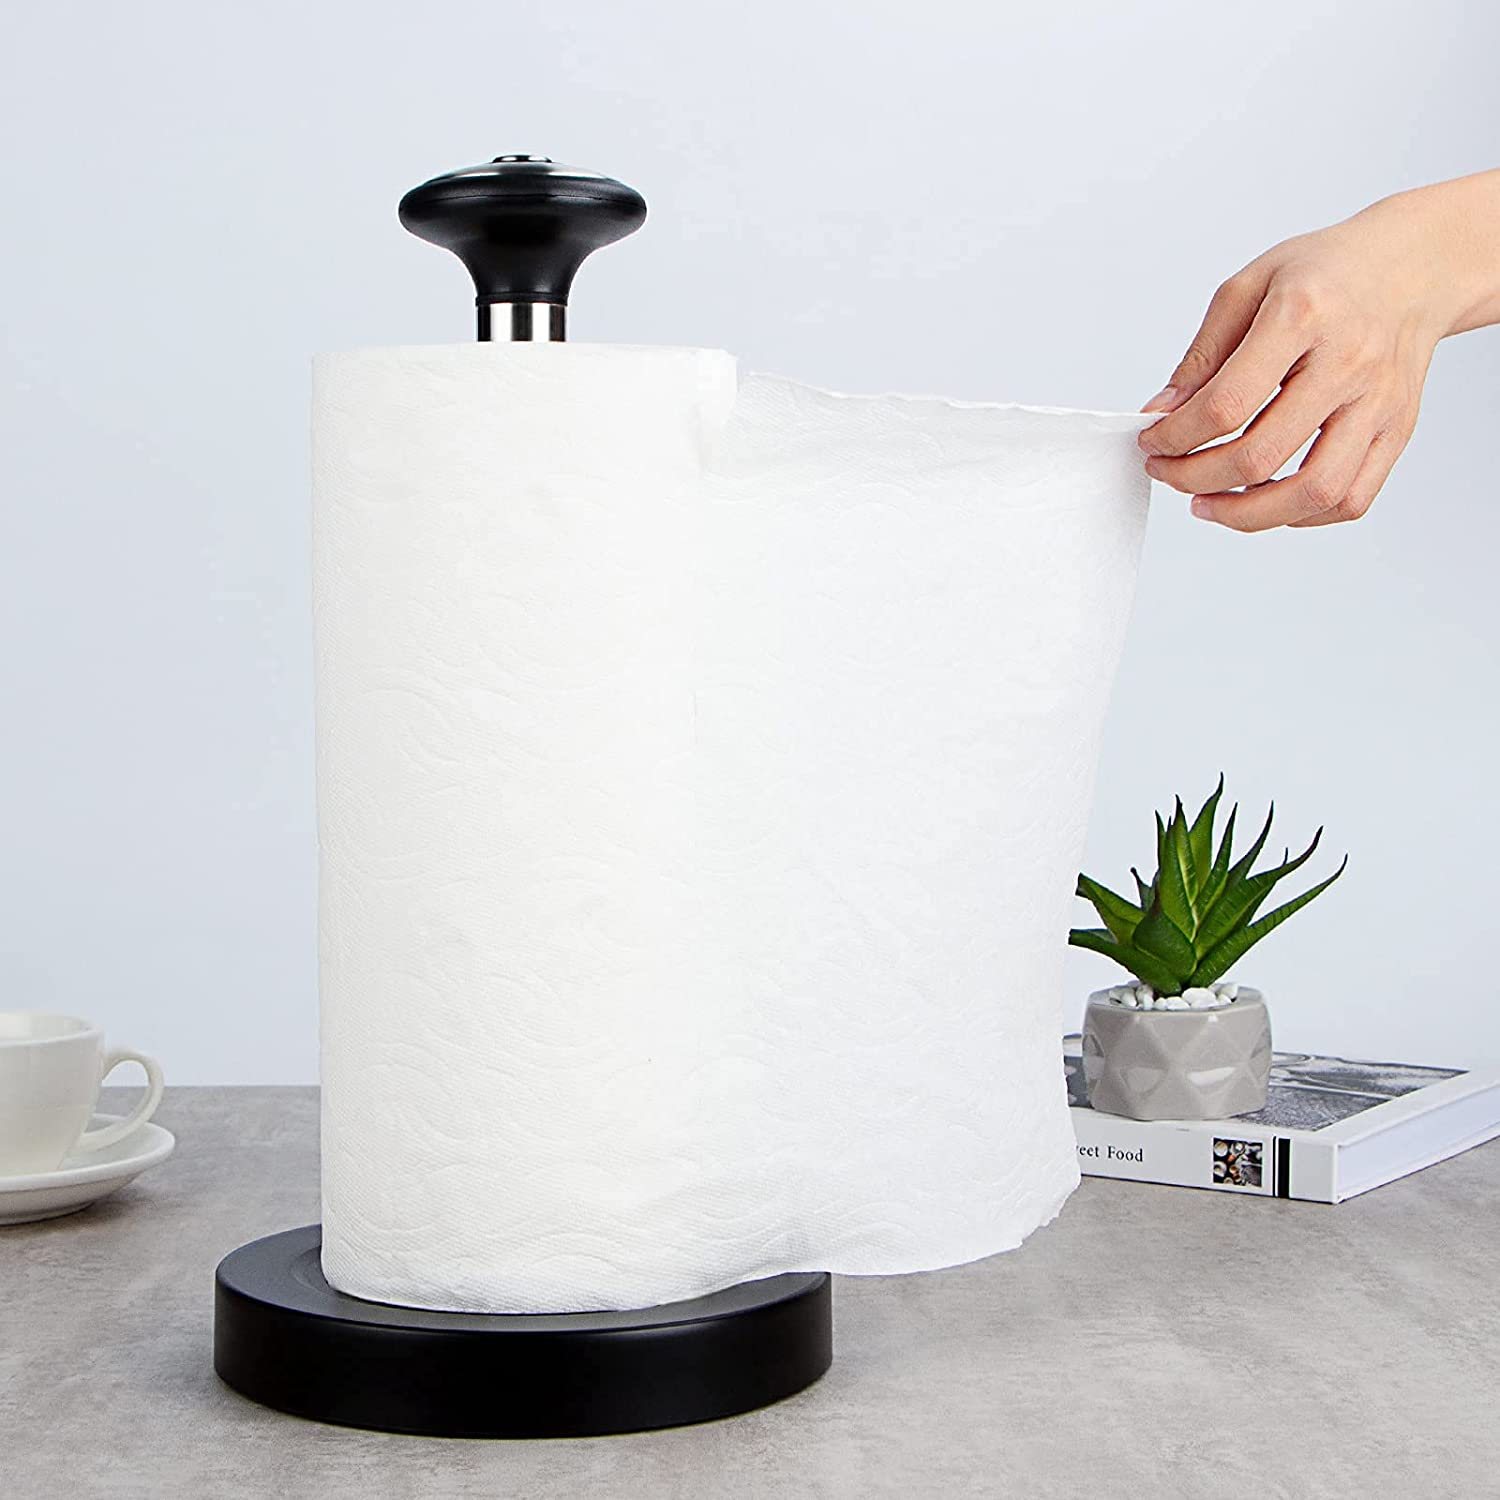 Hillbond Stainless Steel Paper Towel Holding Max 66% OFF 2021 To Holder for